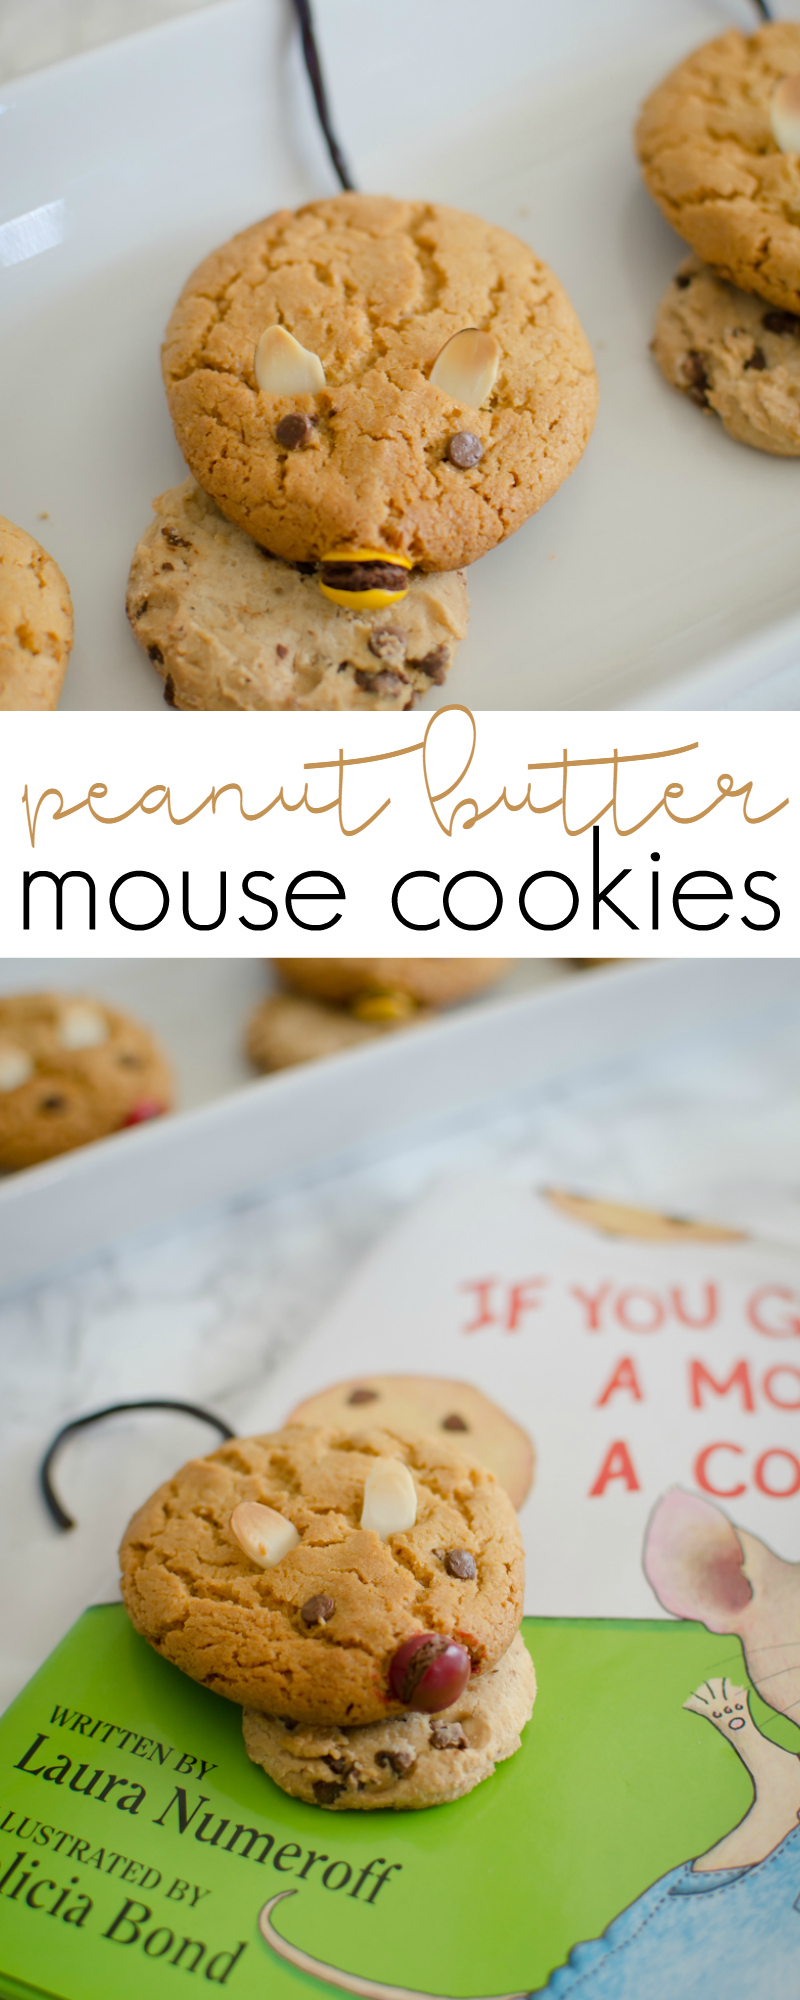 peanut-butter-mouse-cookies